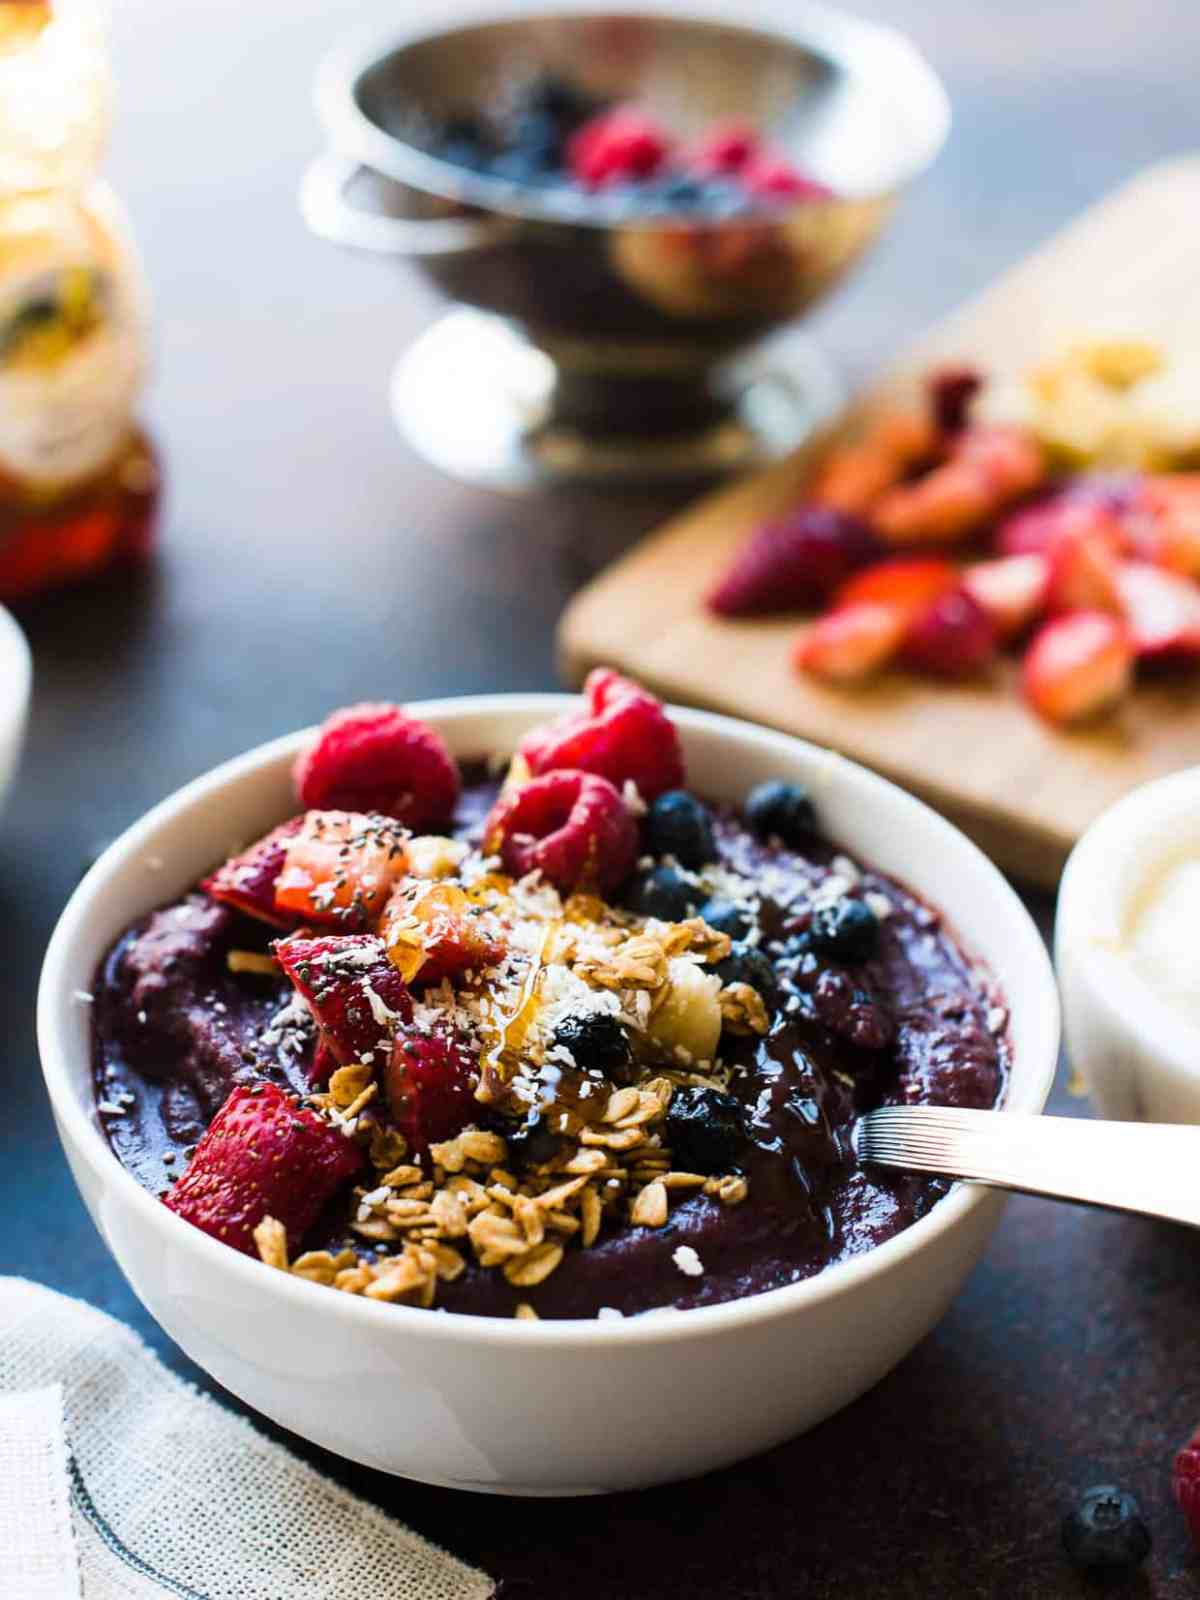 Acai Berry Bowl topped with strawberries, blueberries, raspberries, bananas, coconut, granola, chia seeds and honey.